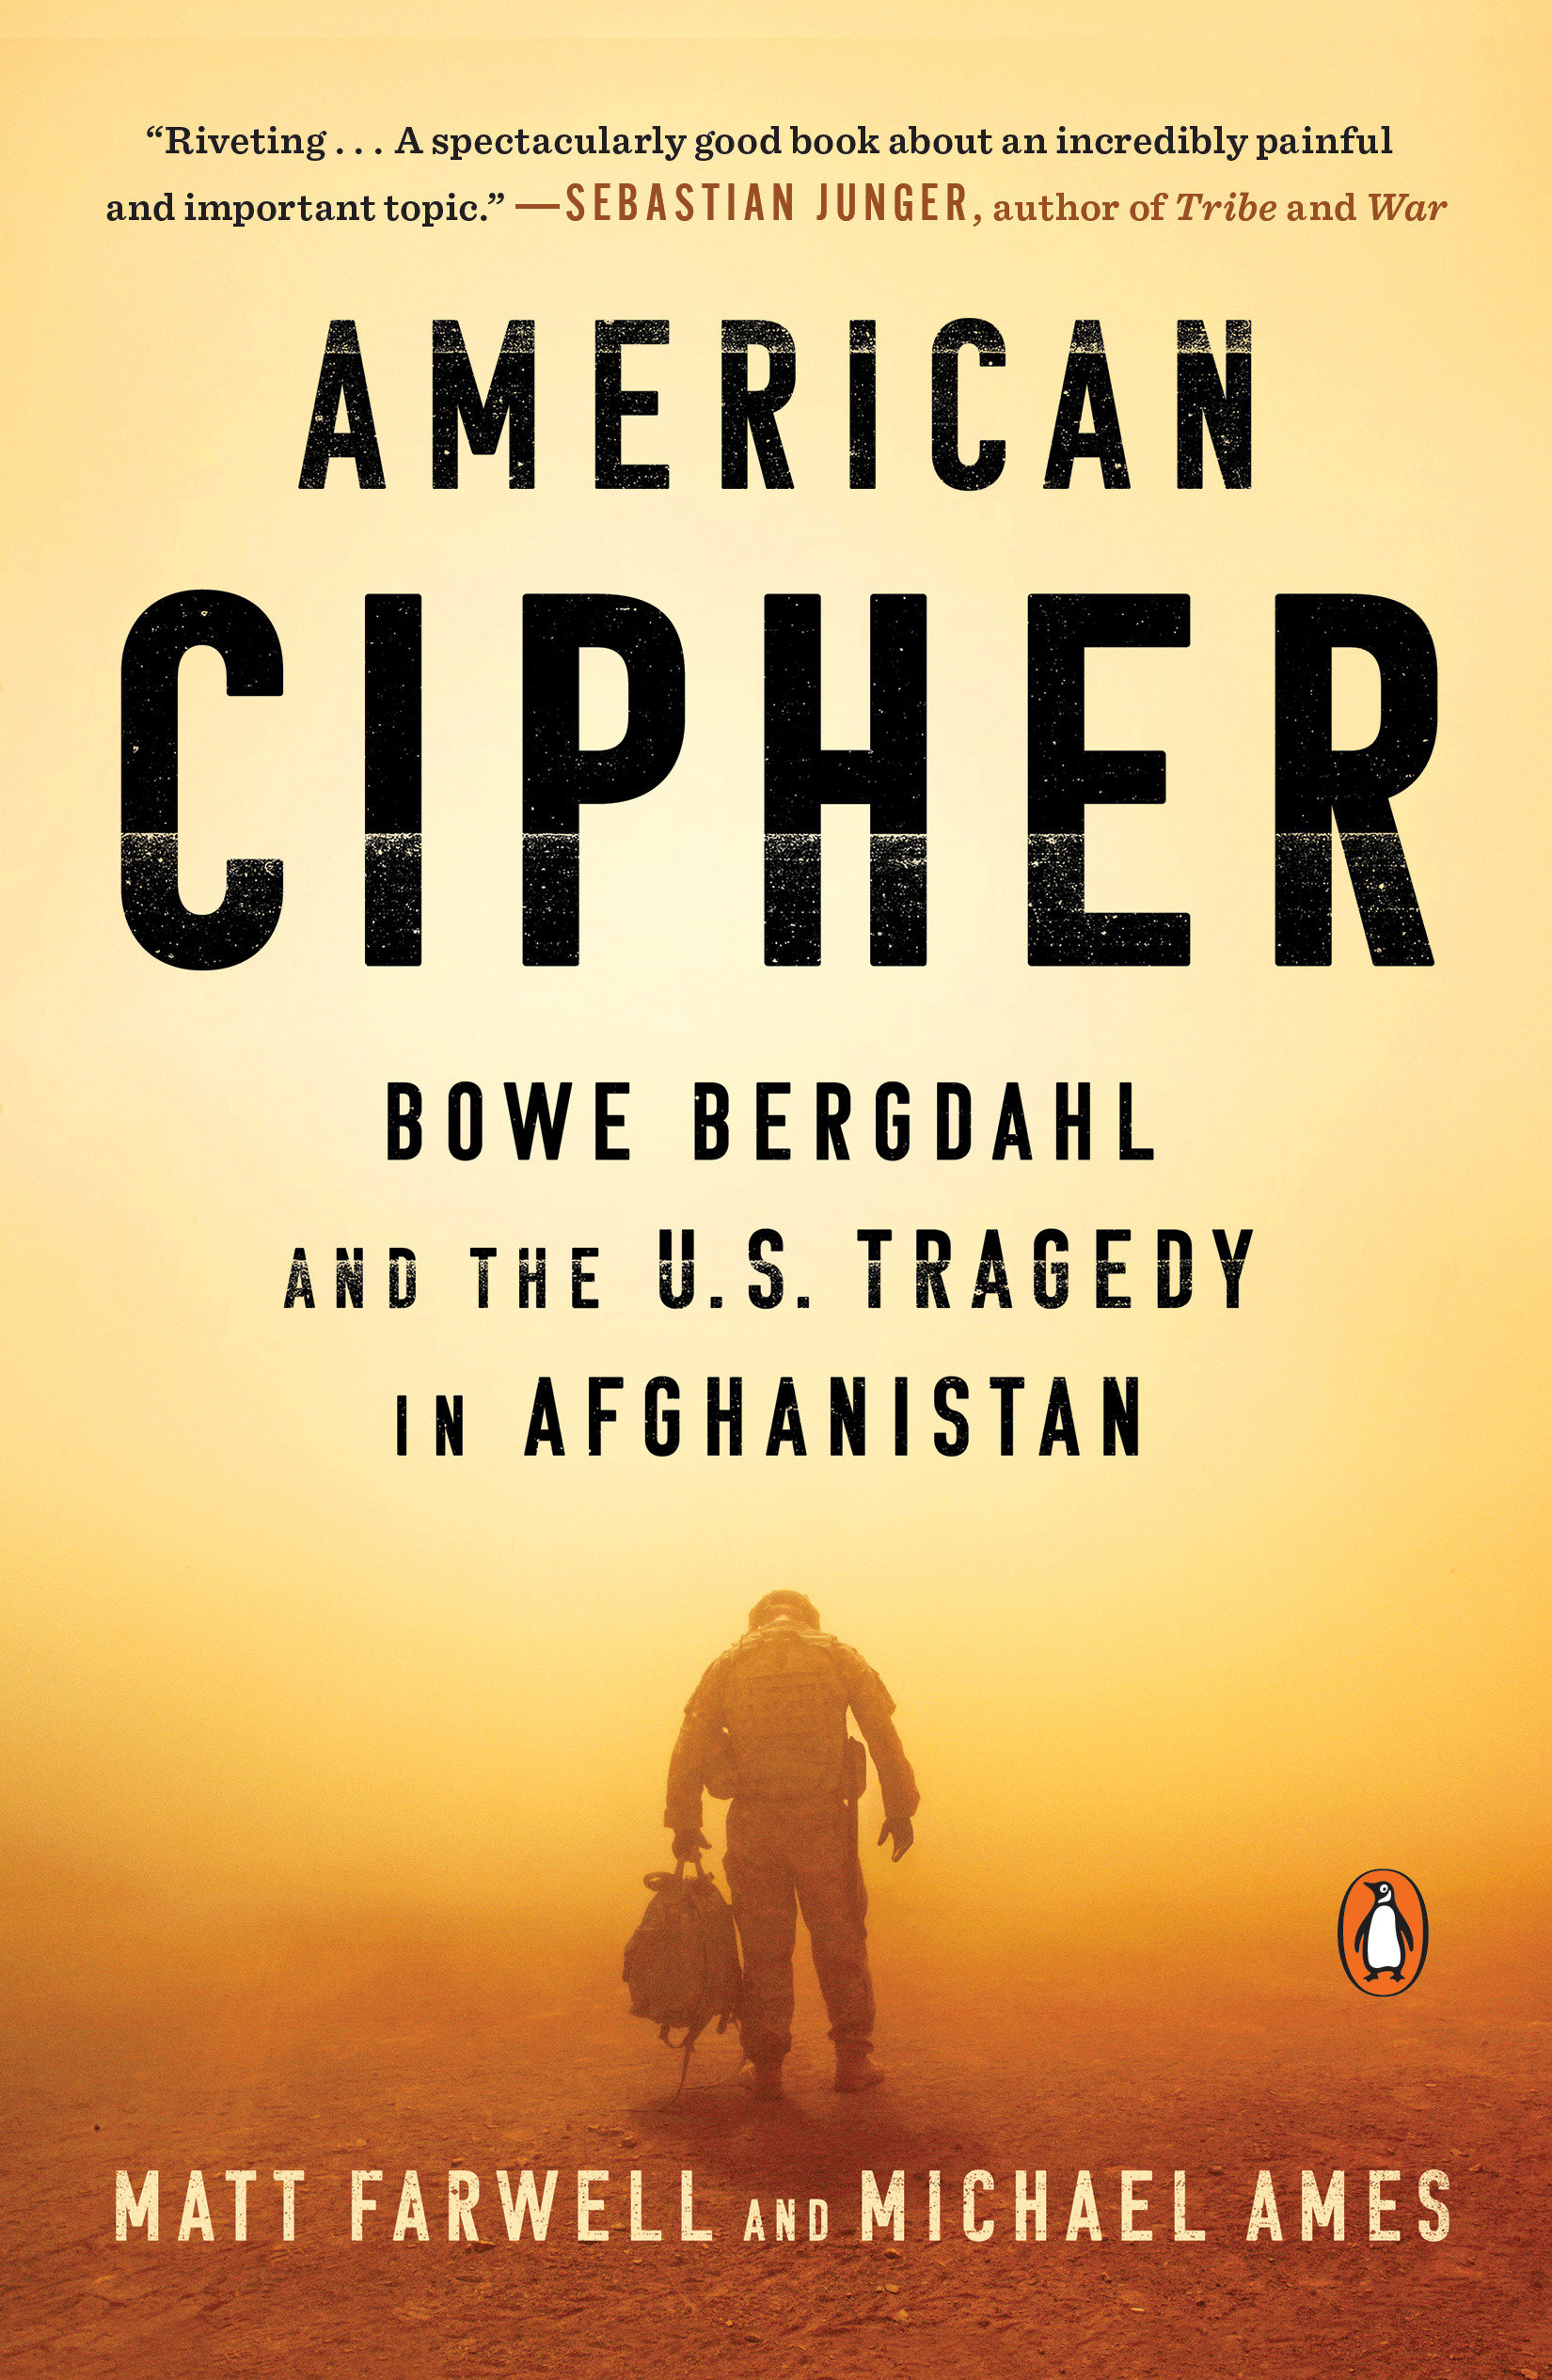 American Cipher Bowe Bergdahl and the U.S. Tragedy in Afghanistan